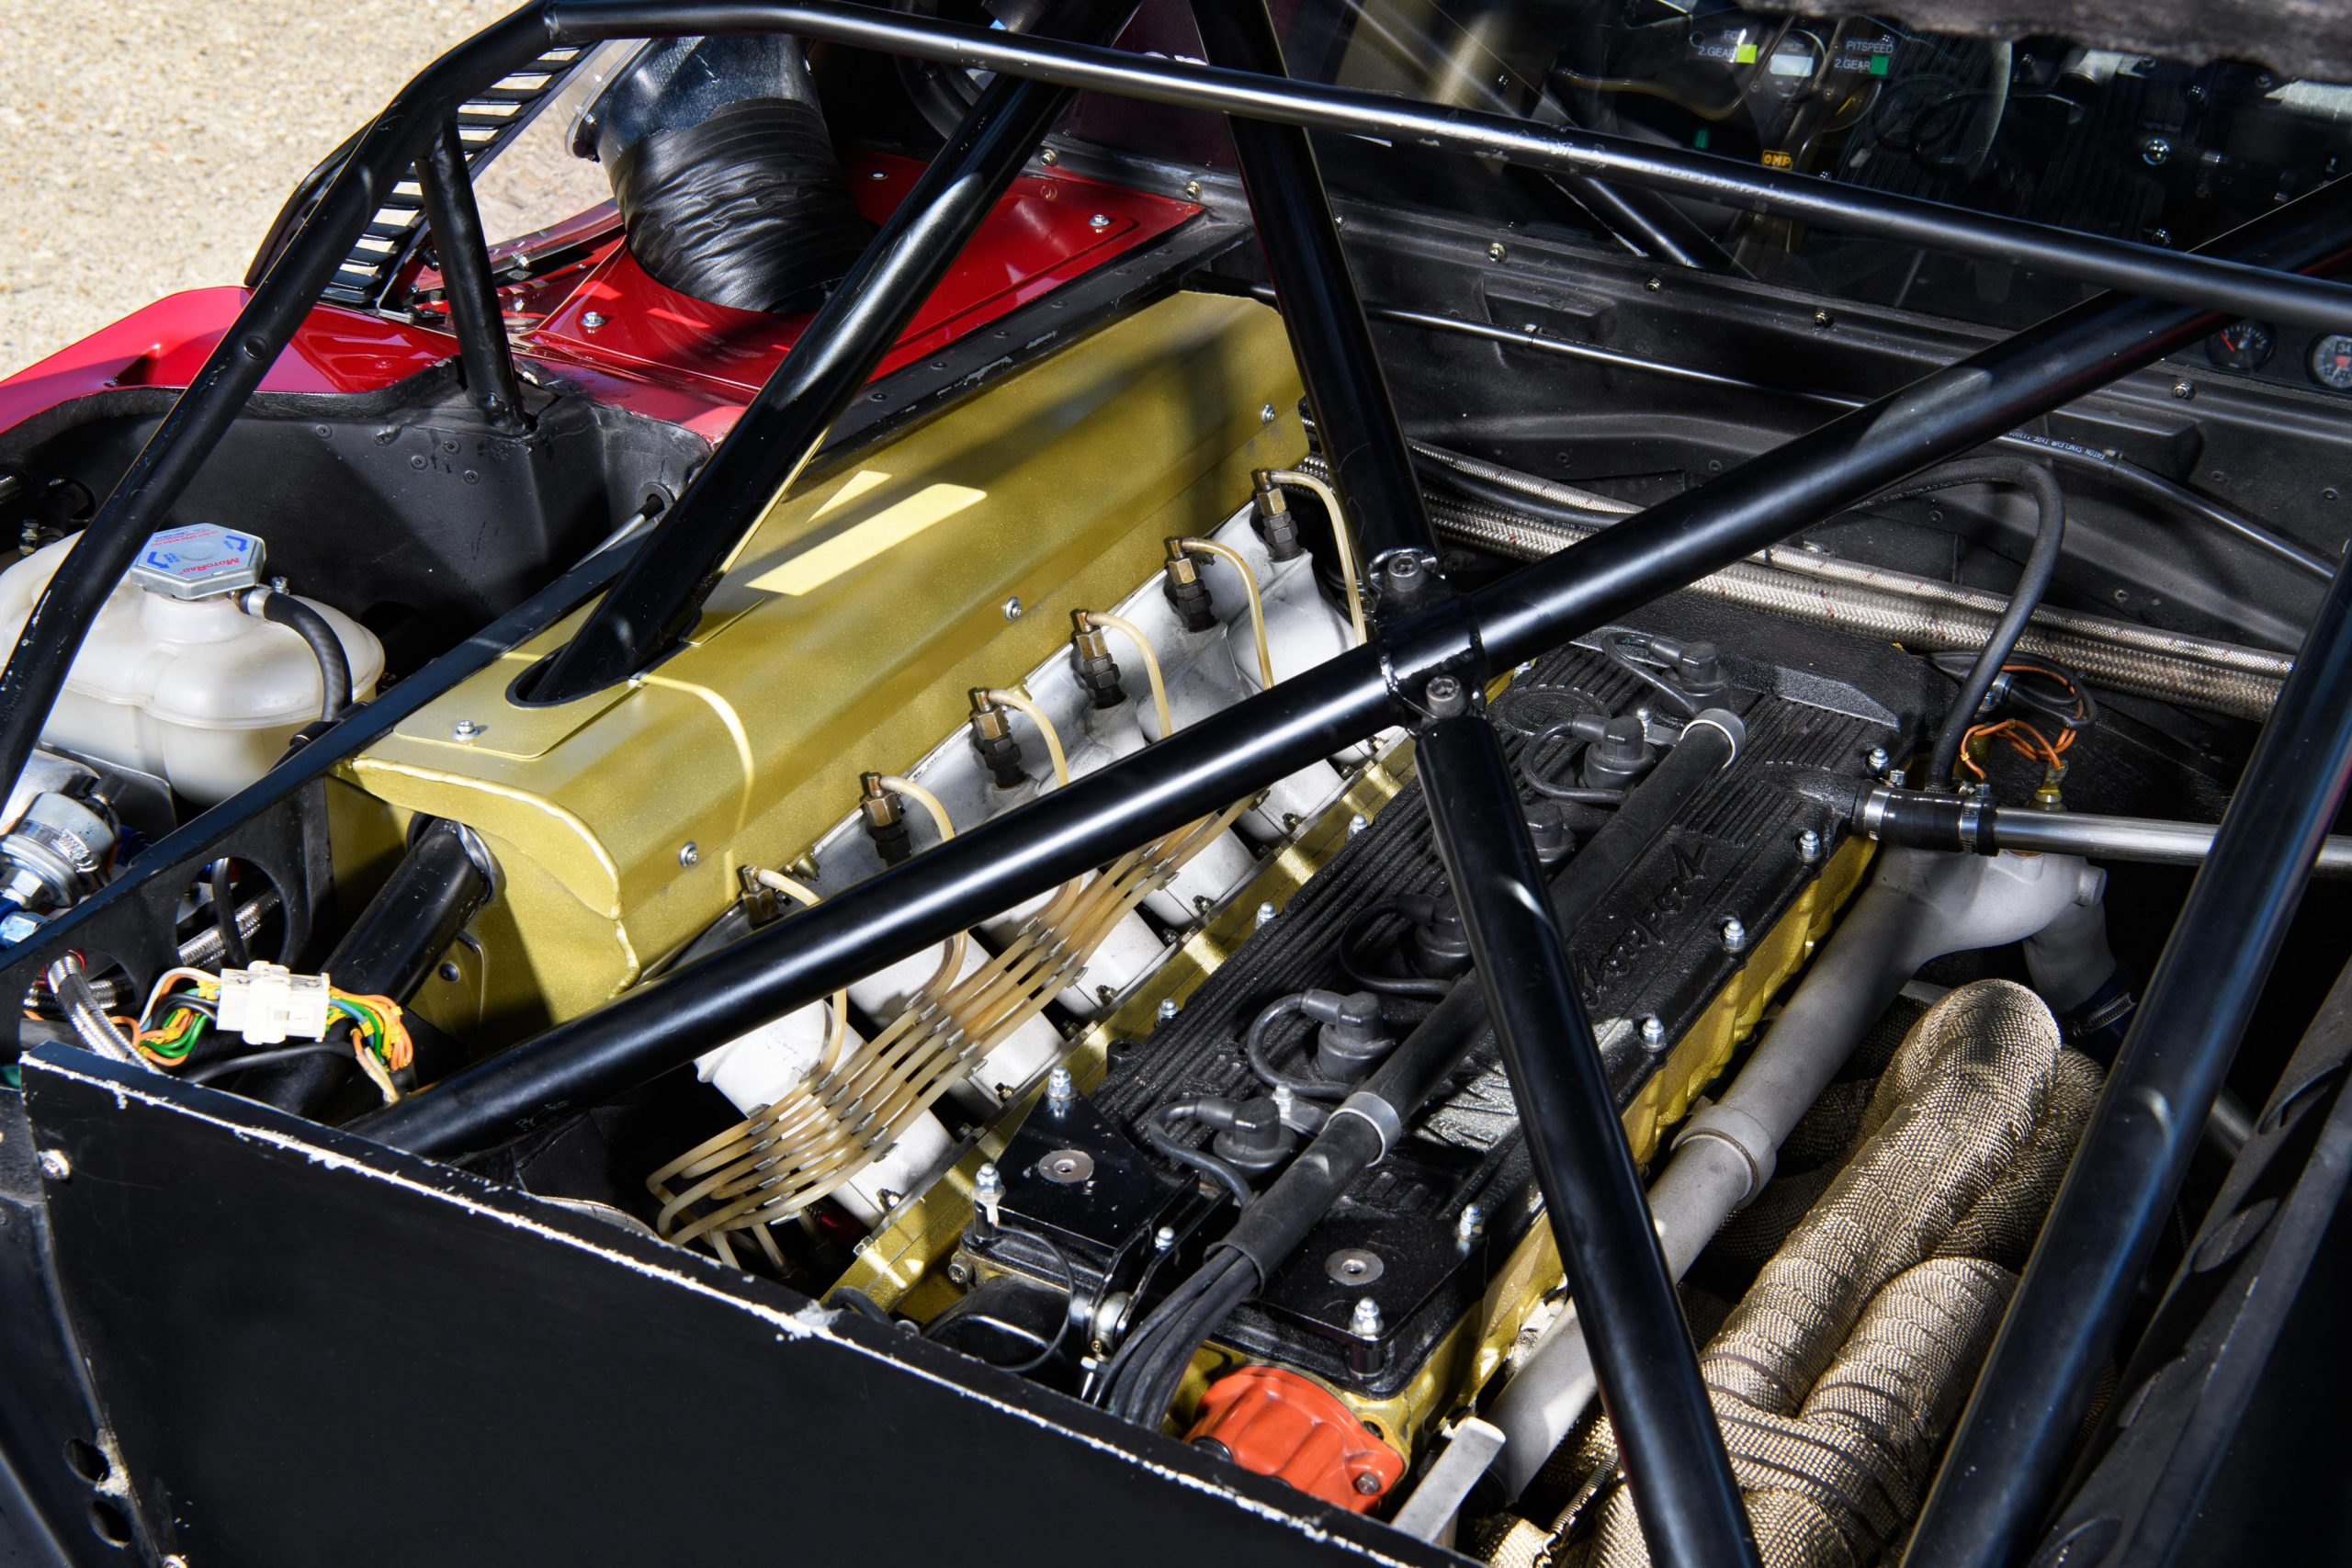 BMW M1 Procar engine